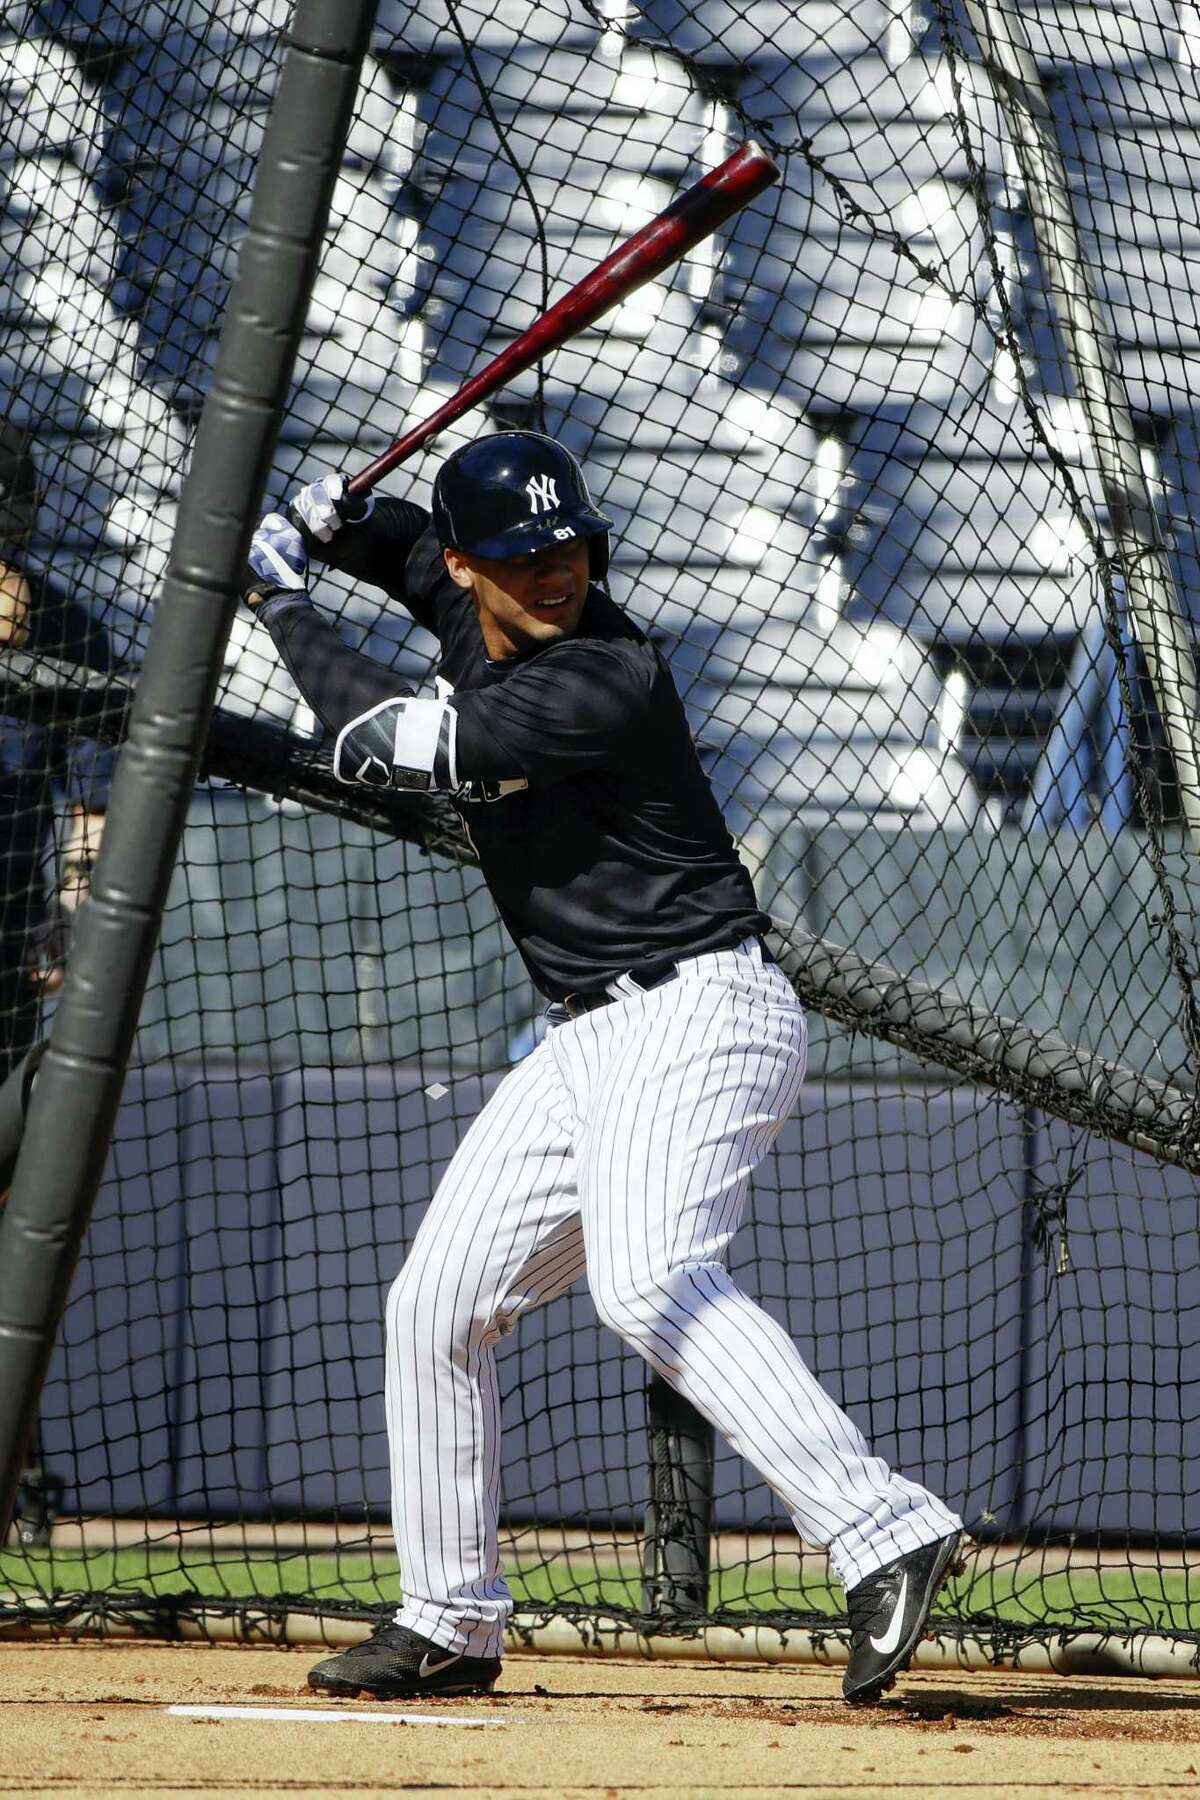 Yankees prospect Gleyber Torres takes swings during a spring training workout in Tampa, Fla.